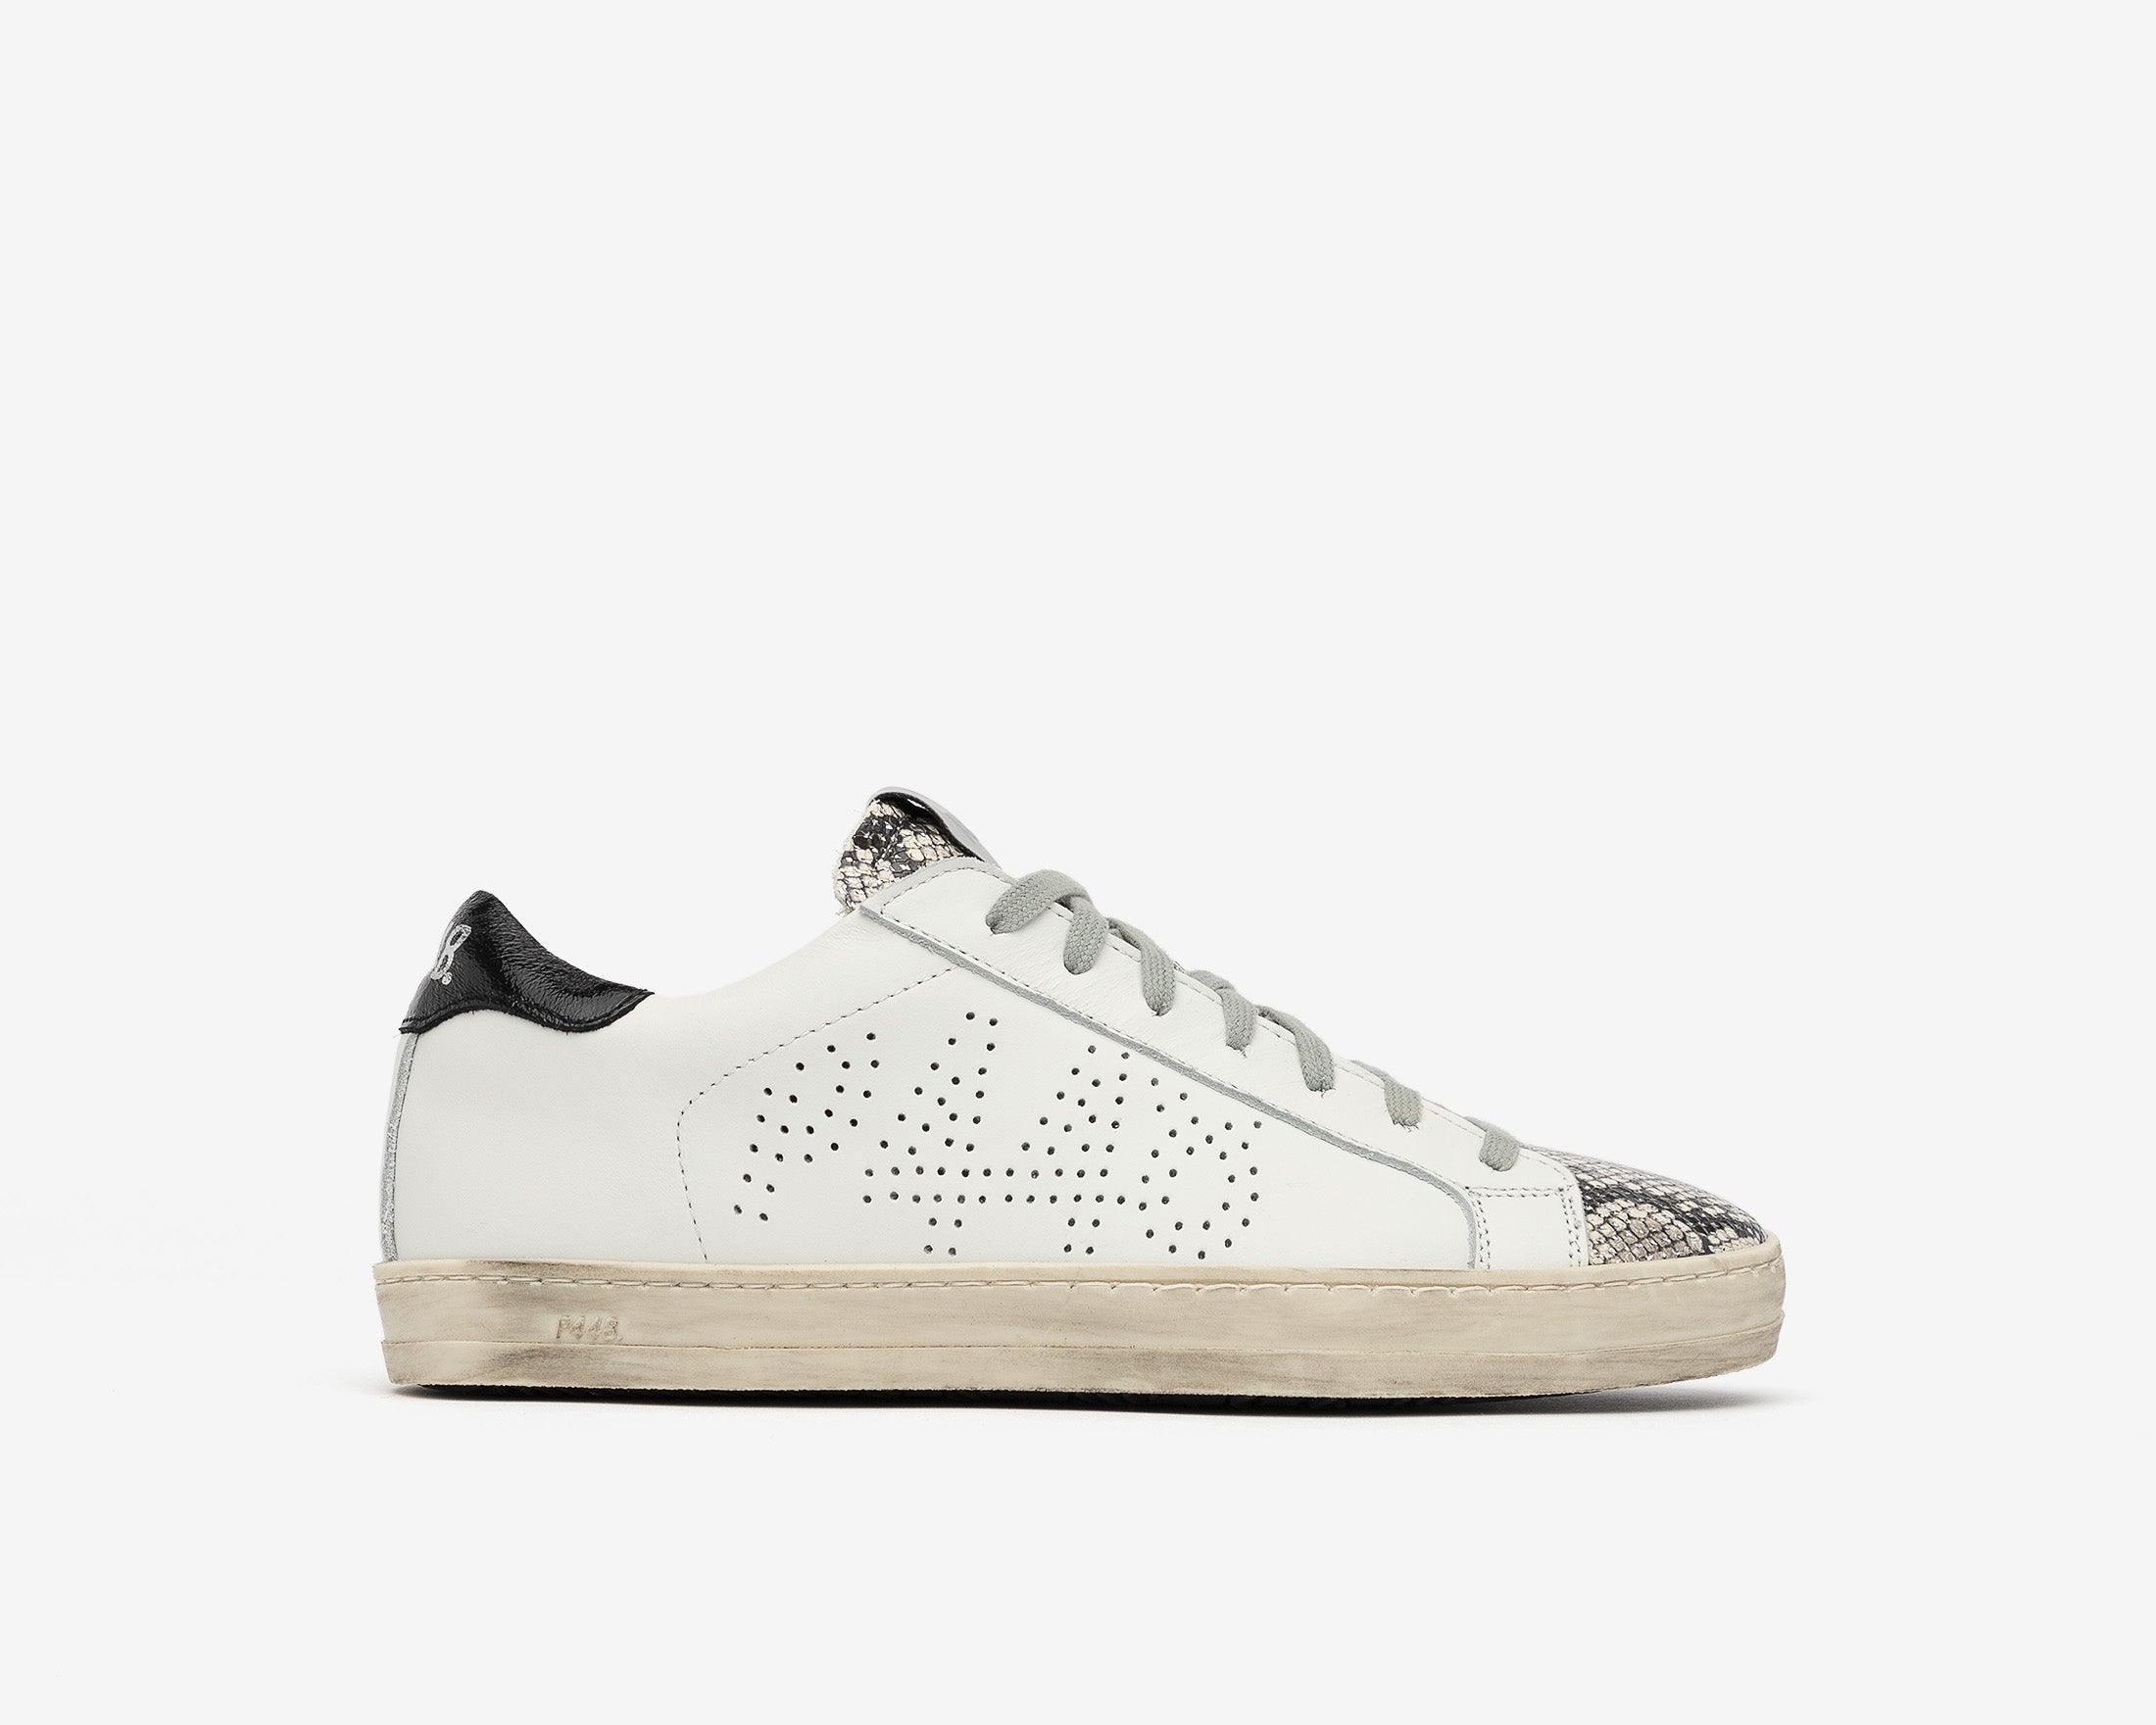 John Low-Top Sneaker in White/Silver Python - Profile